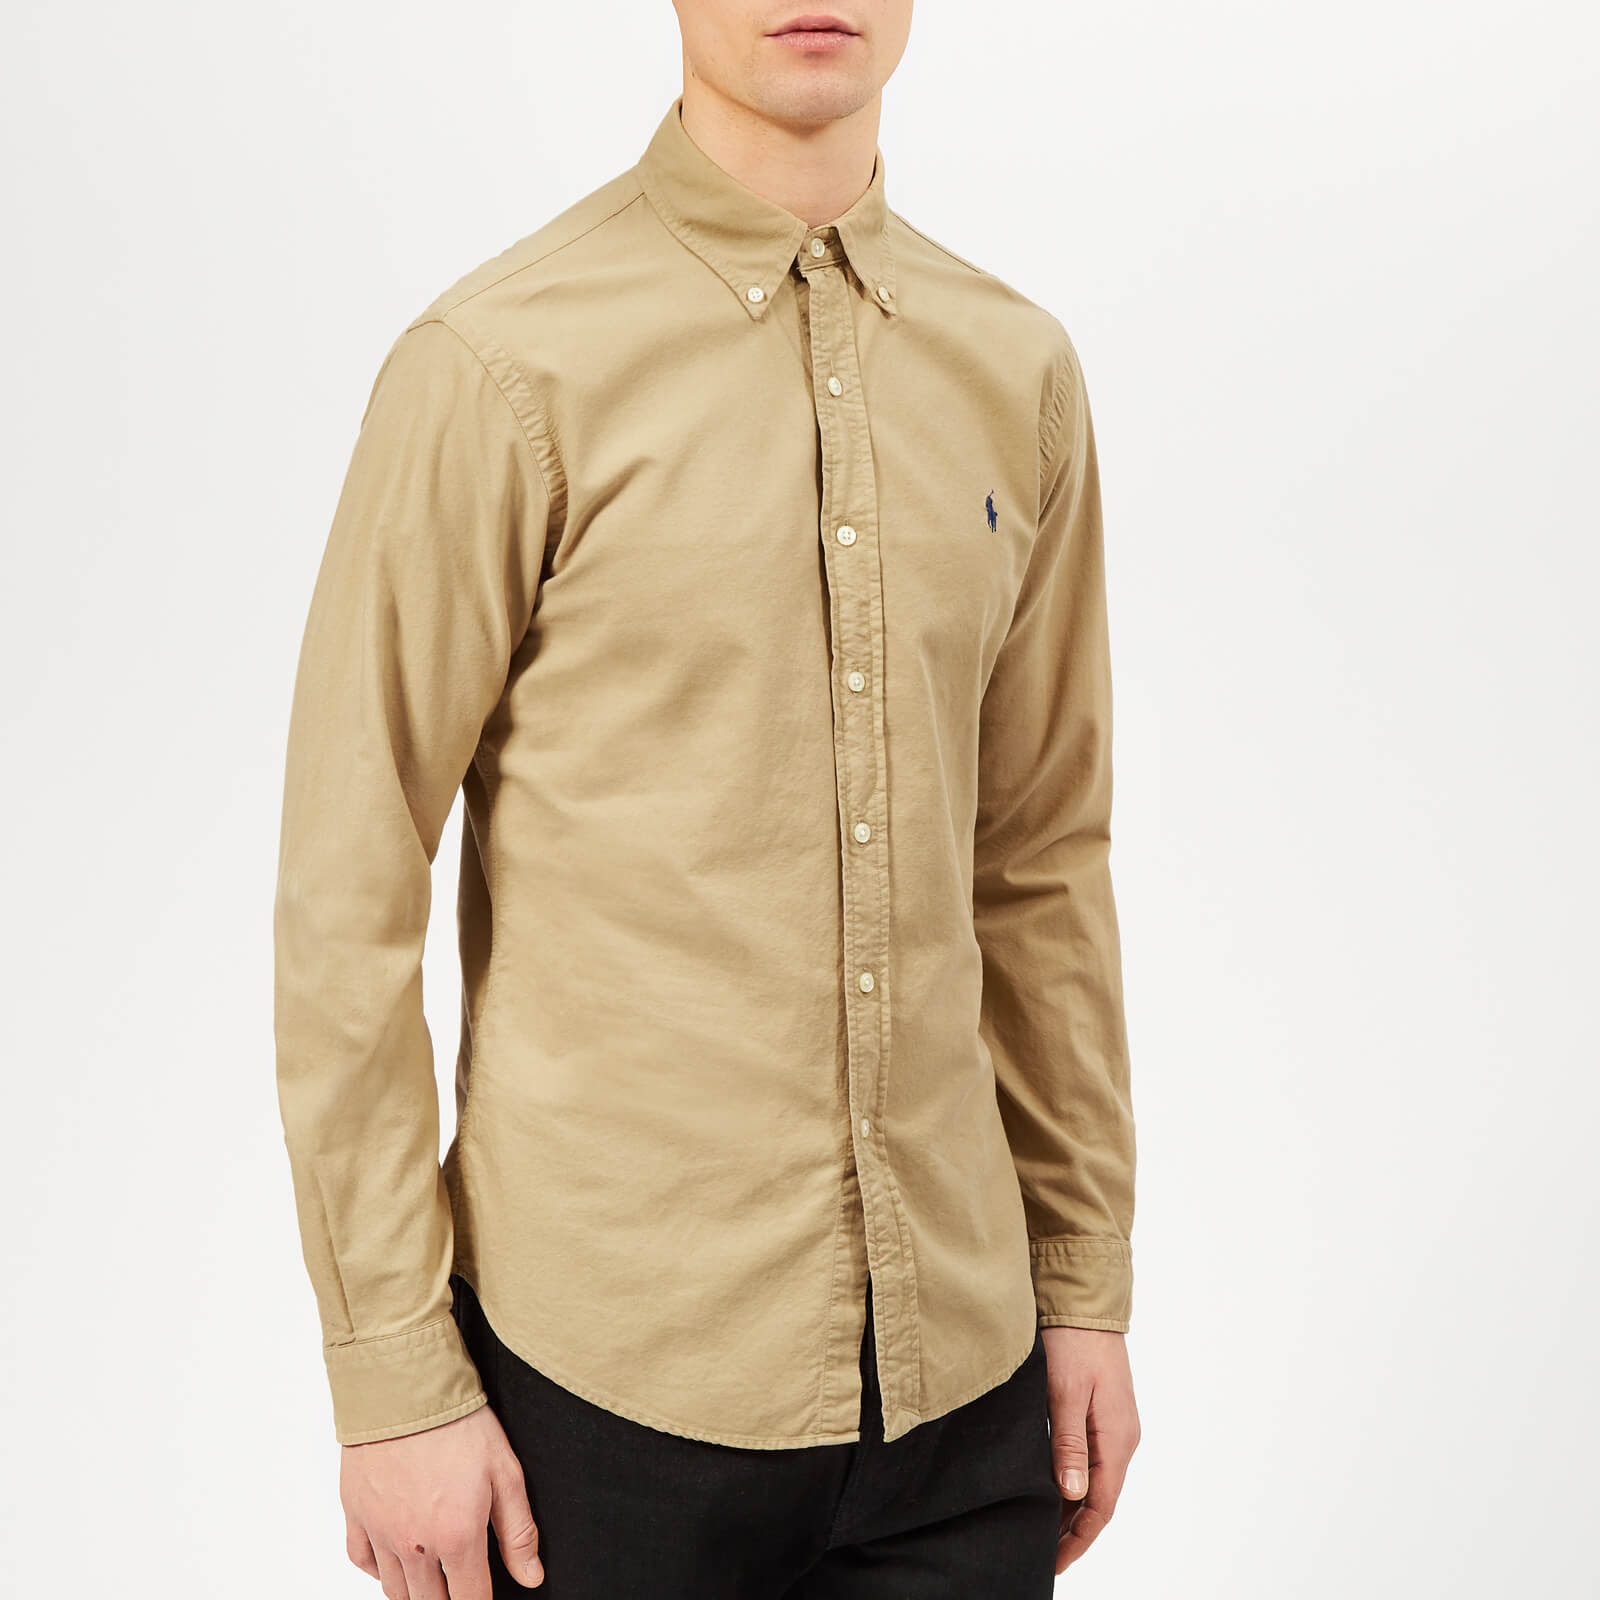 65b2d558c74b Polo Ralph Lauren Men s Garment Dyed Oxford Long Sleeve Shirt - Surrey Tan  - Free UK Delivery over £50